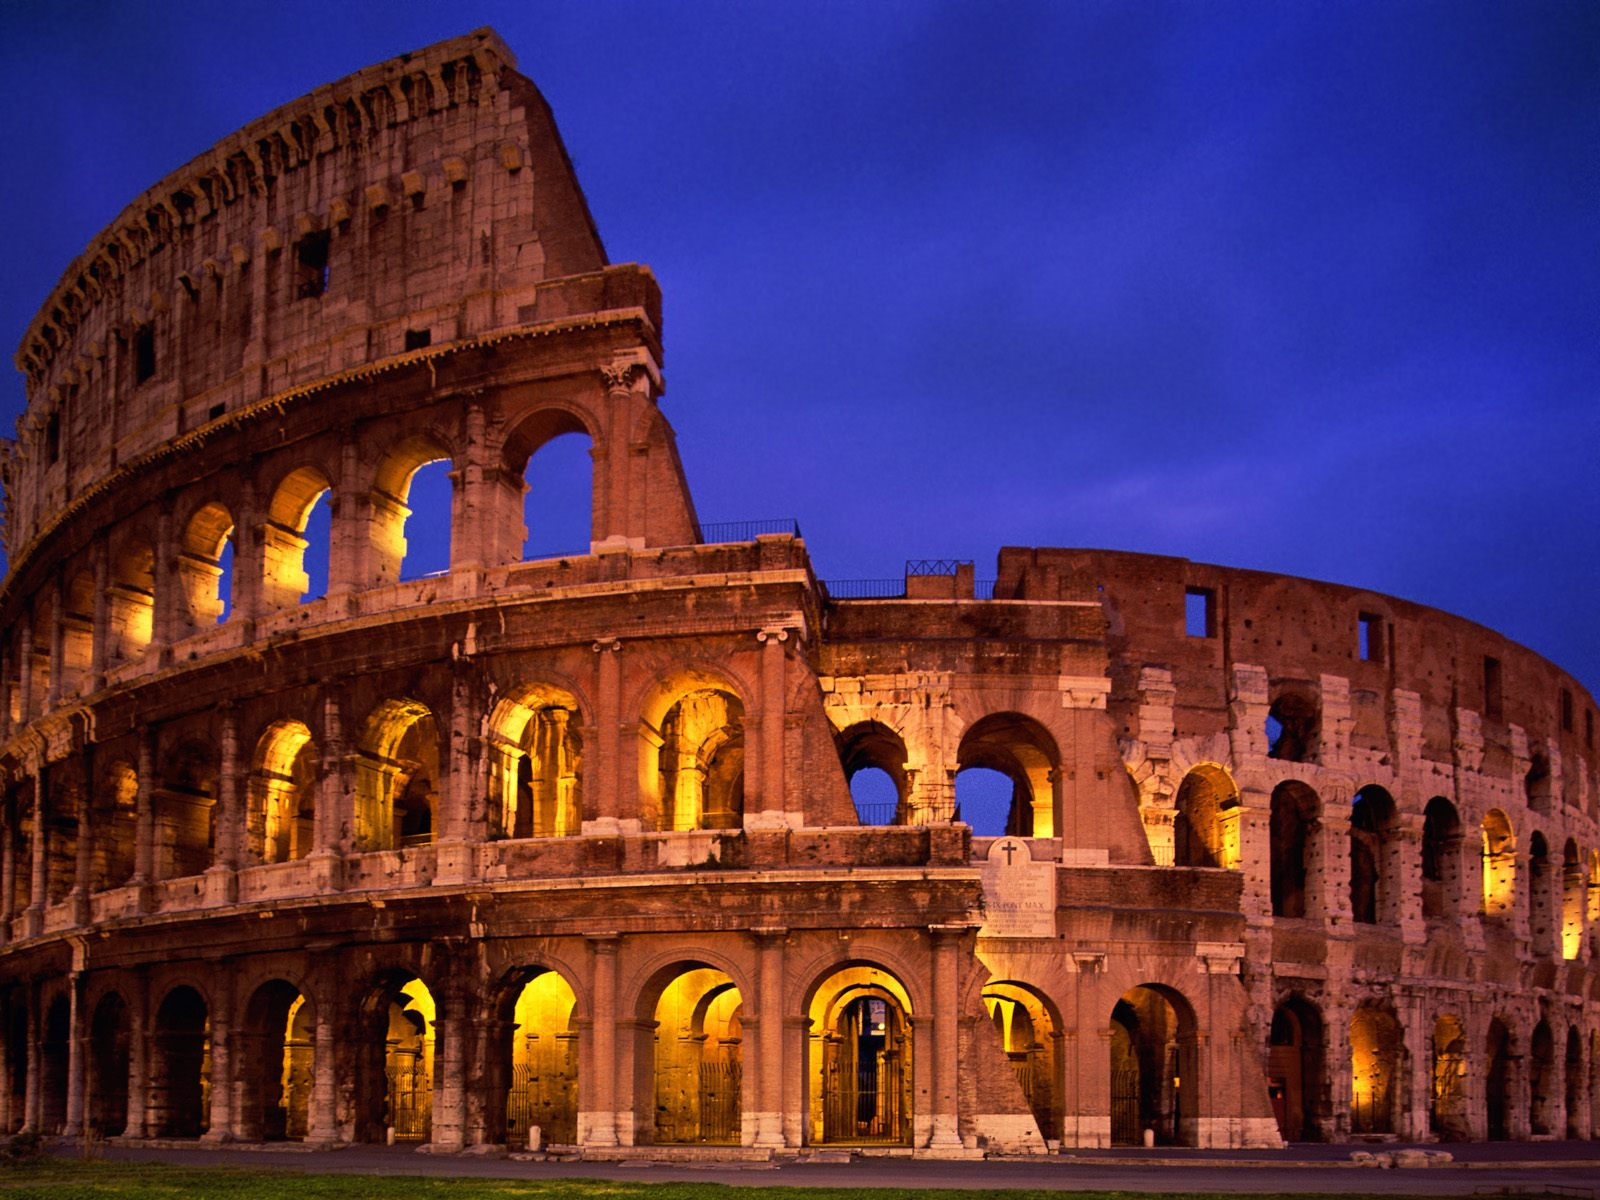 The Colosseum Rome Italy 1449.79 Kb